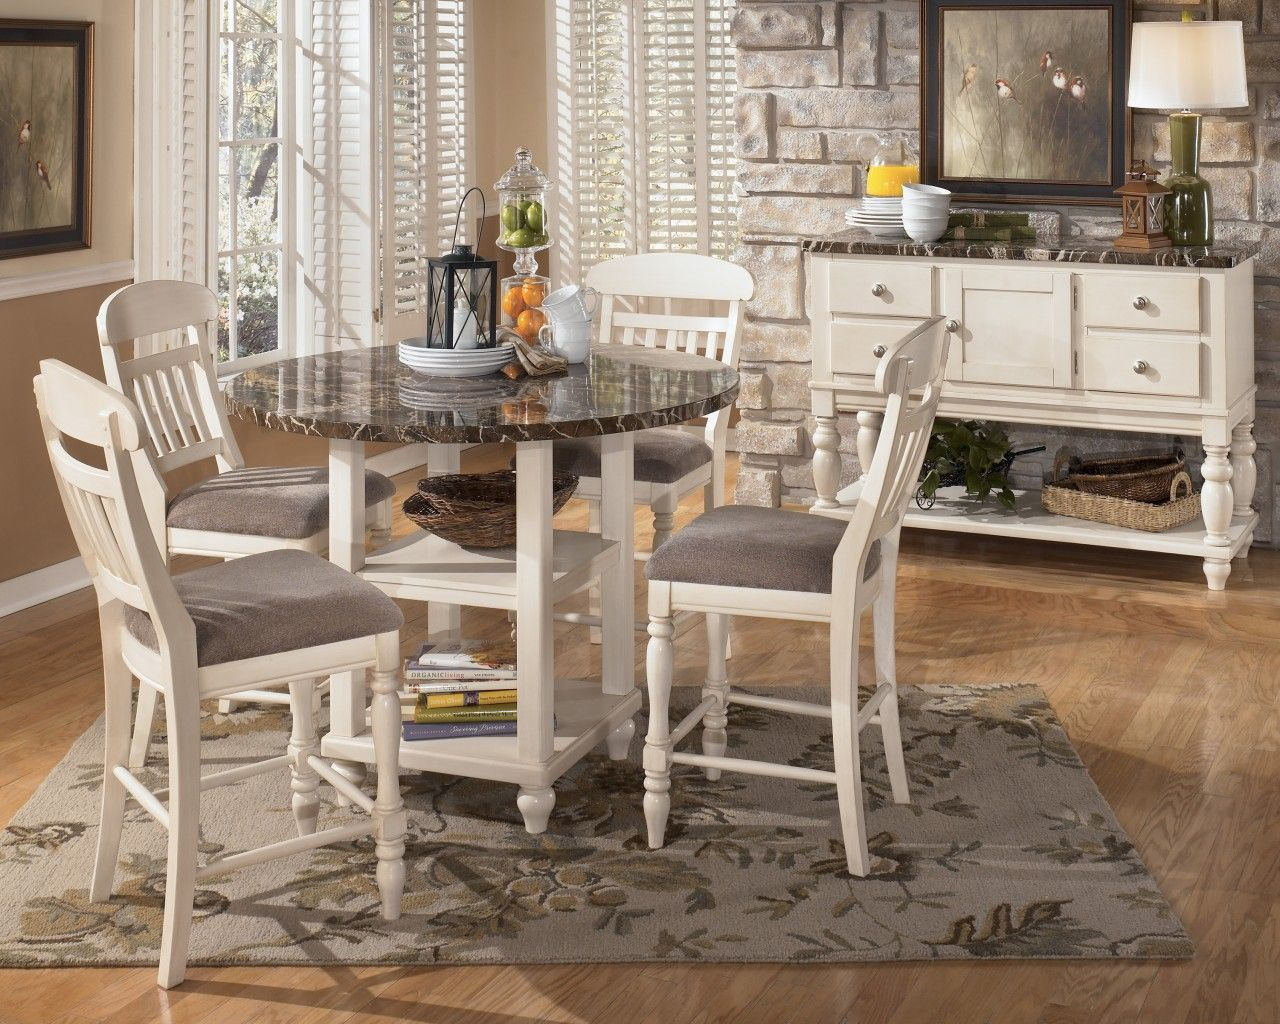 Counter height round table and chairs - Dining Room White Classic Wooden 5 Piece Dining Set Design Style With Marble Surface Above Dining Counter Height